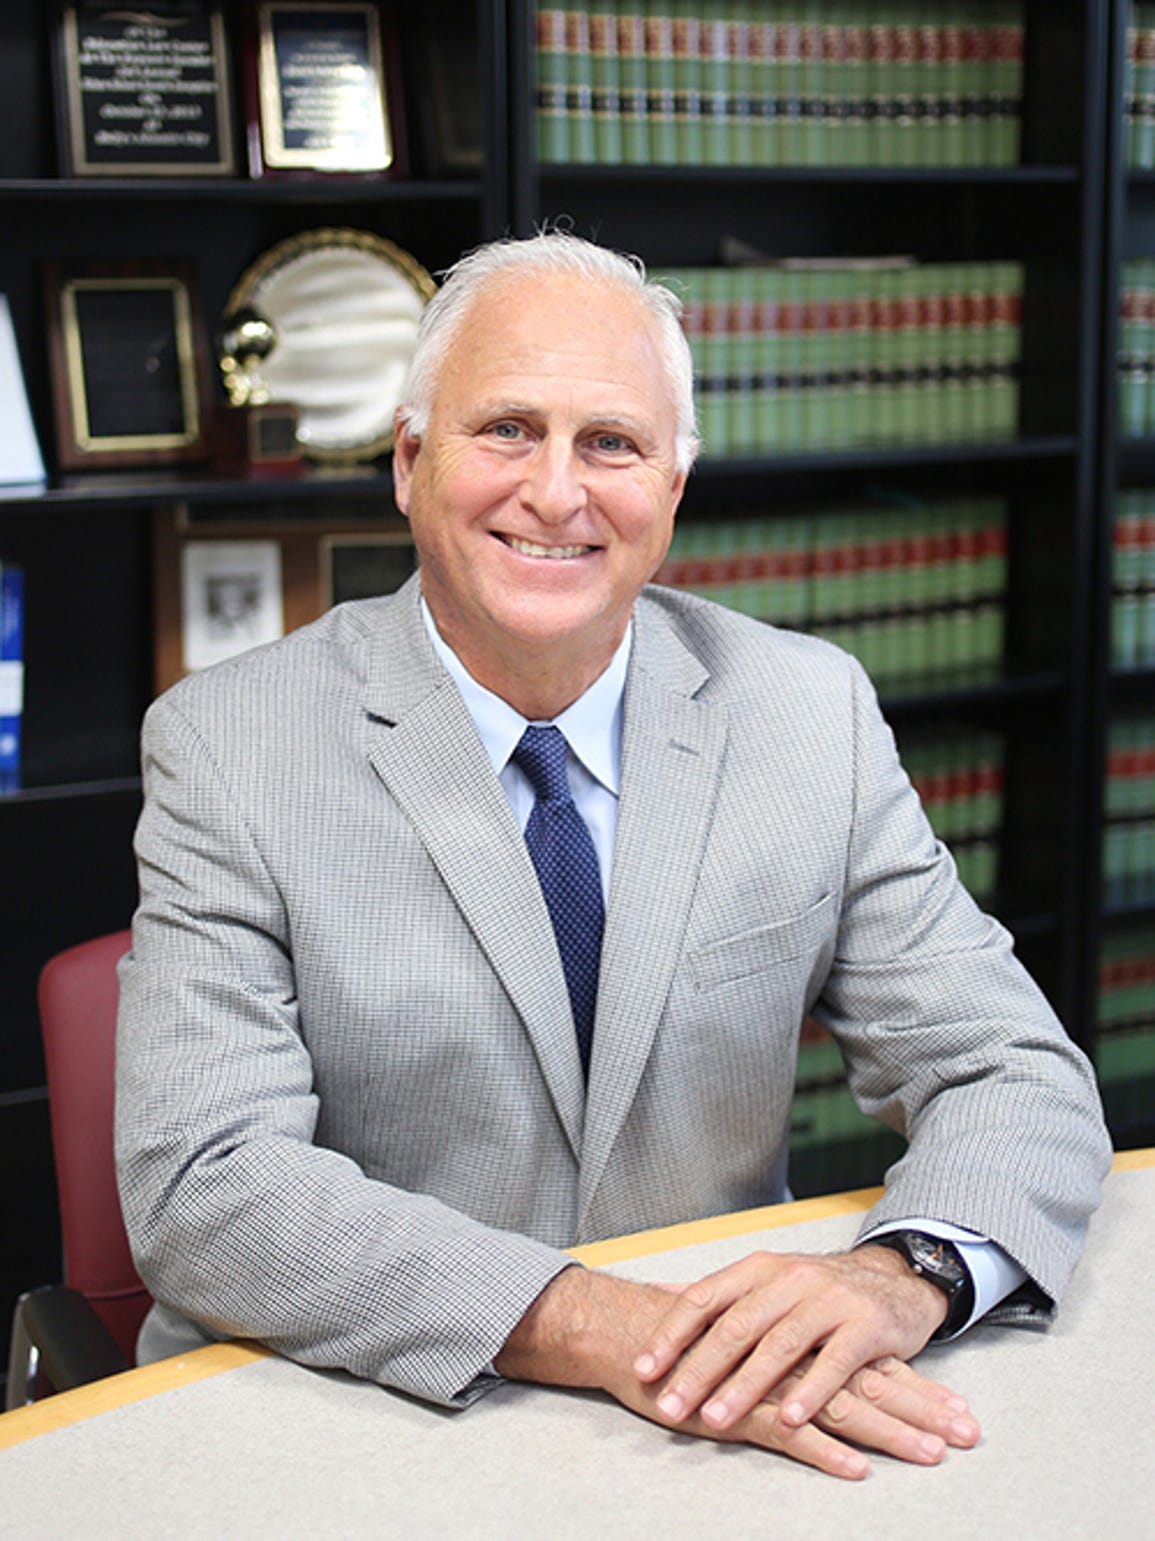 David Sciarra, executive director, Education Law Center